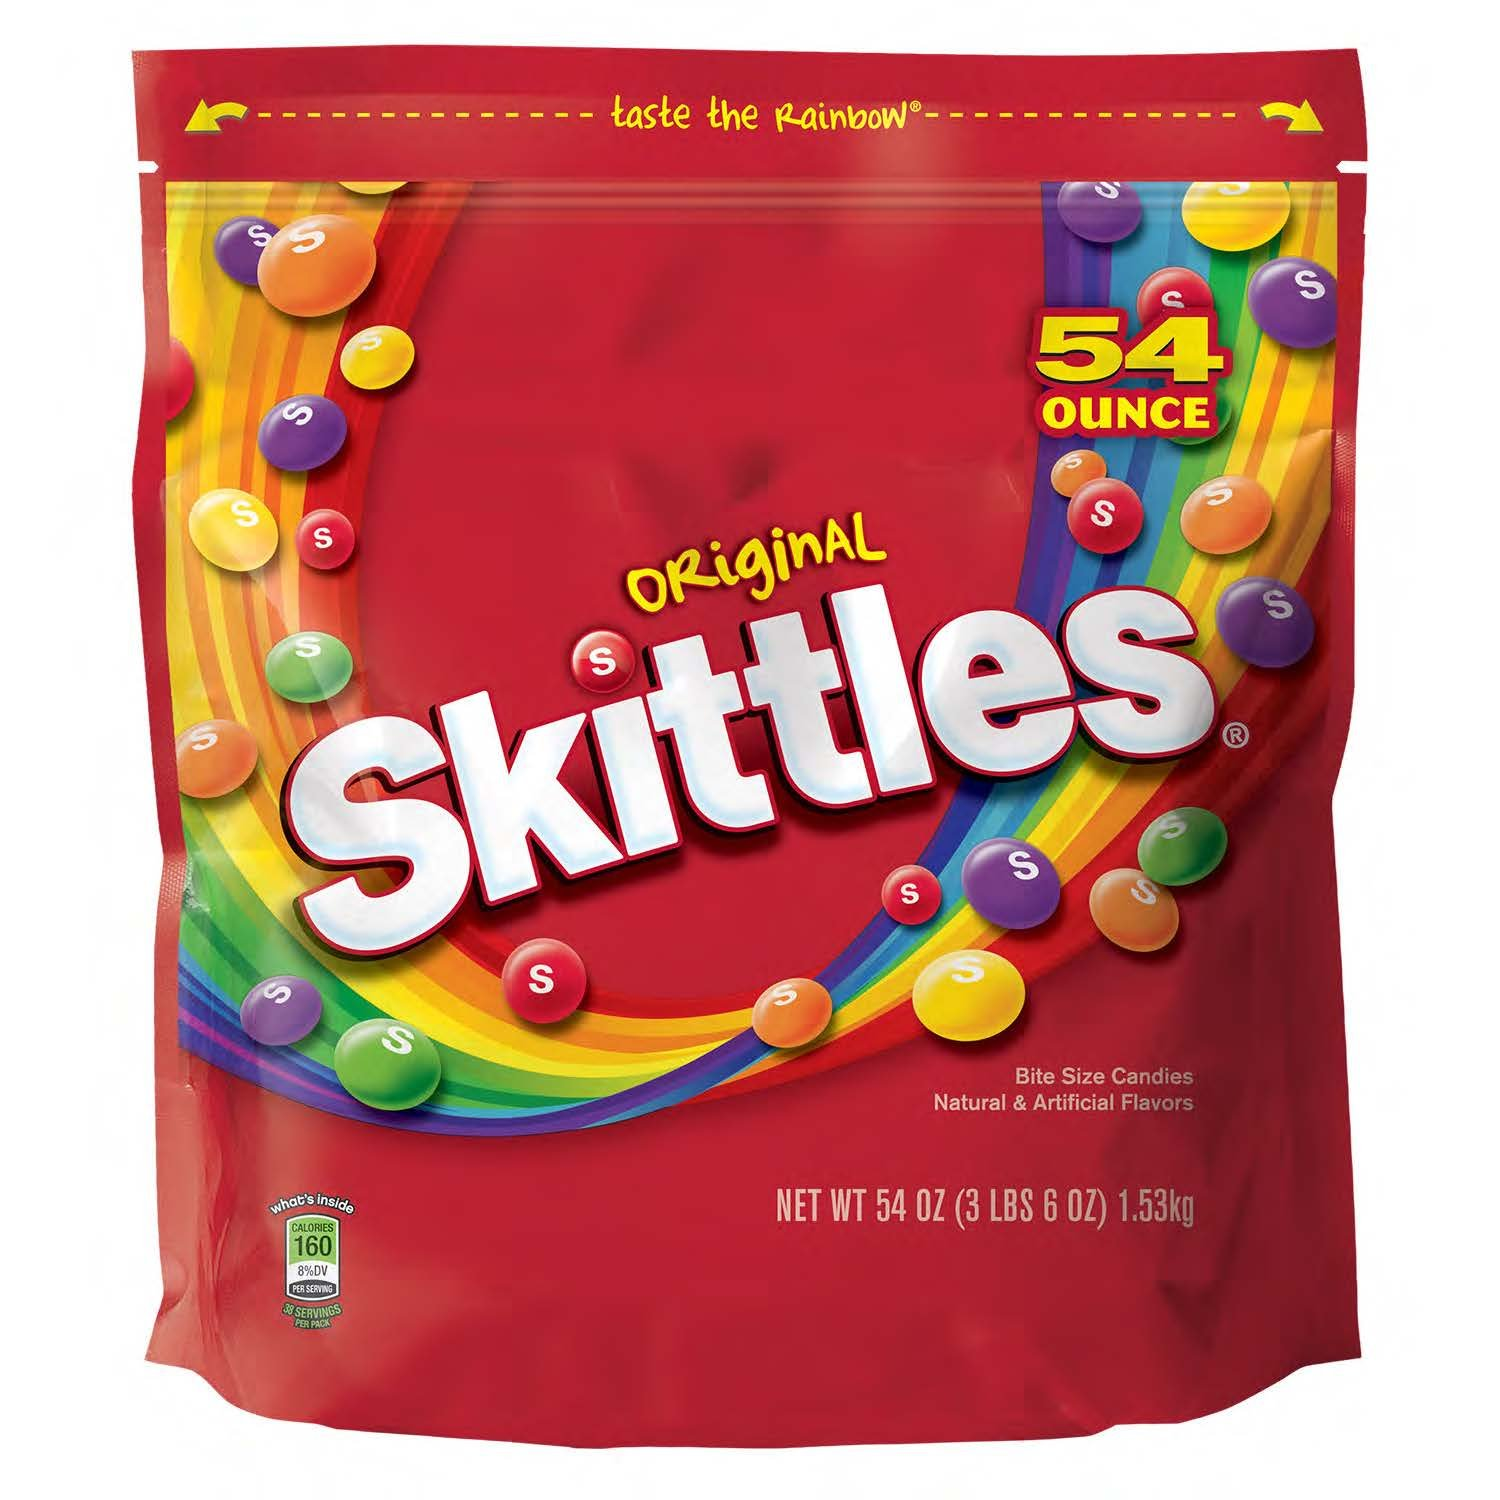 08516341bf Amazon.com   SKITTLES--Original Candy--Assorted Fruit Flavored  Candy--Skittles Original Bite-Sized Candies--Resealable Pouch--1-54oz. Bag    Grocery ...